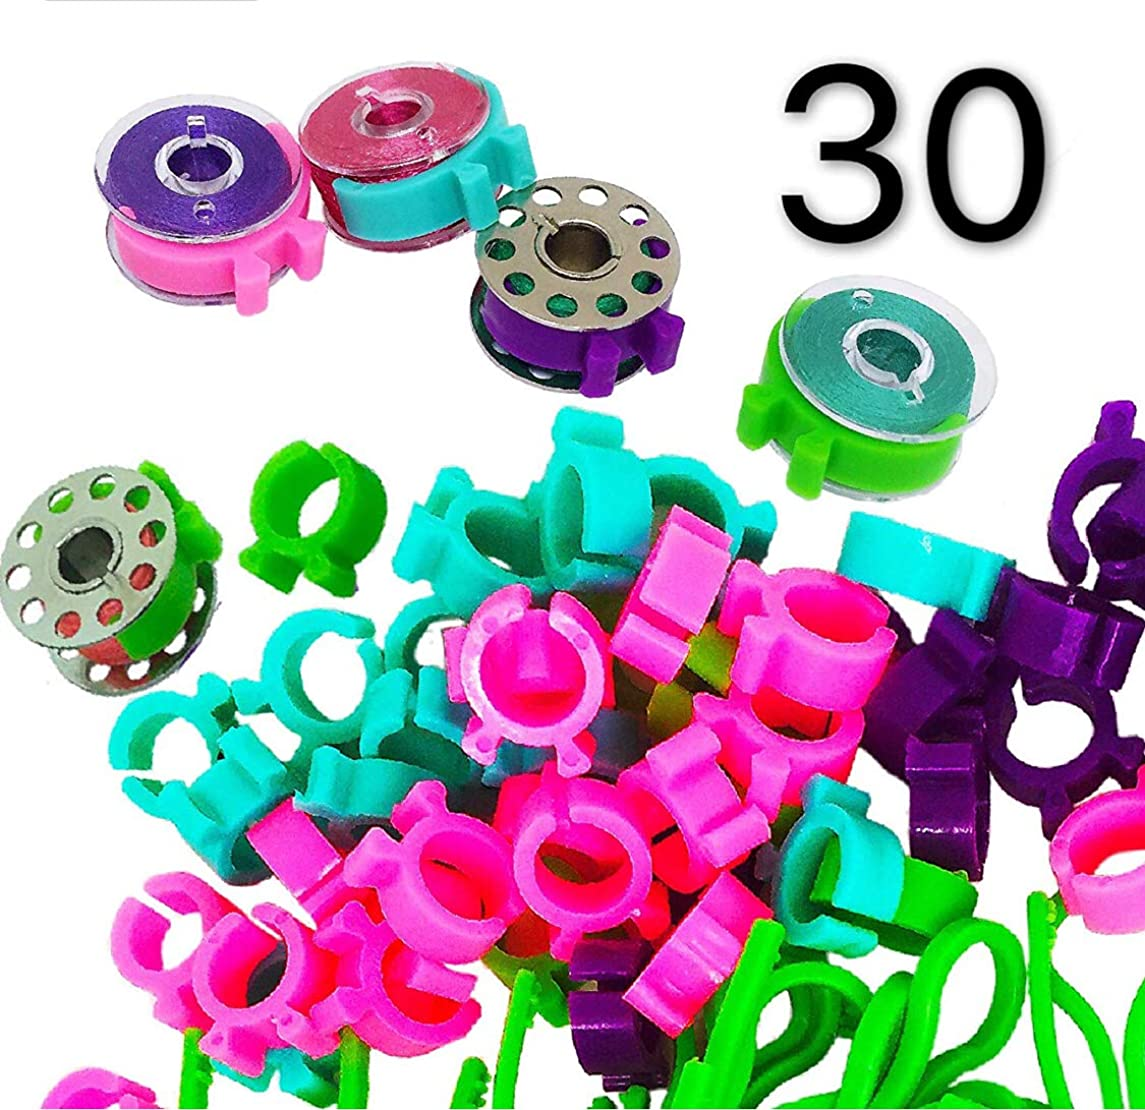 30 Pcs Bobbin Clips Holders Clamps Bobbin Buddies Great for Embroidery Quilting and Sewing Thread Sewing Machine PeavyTailor